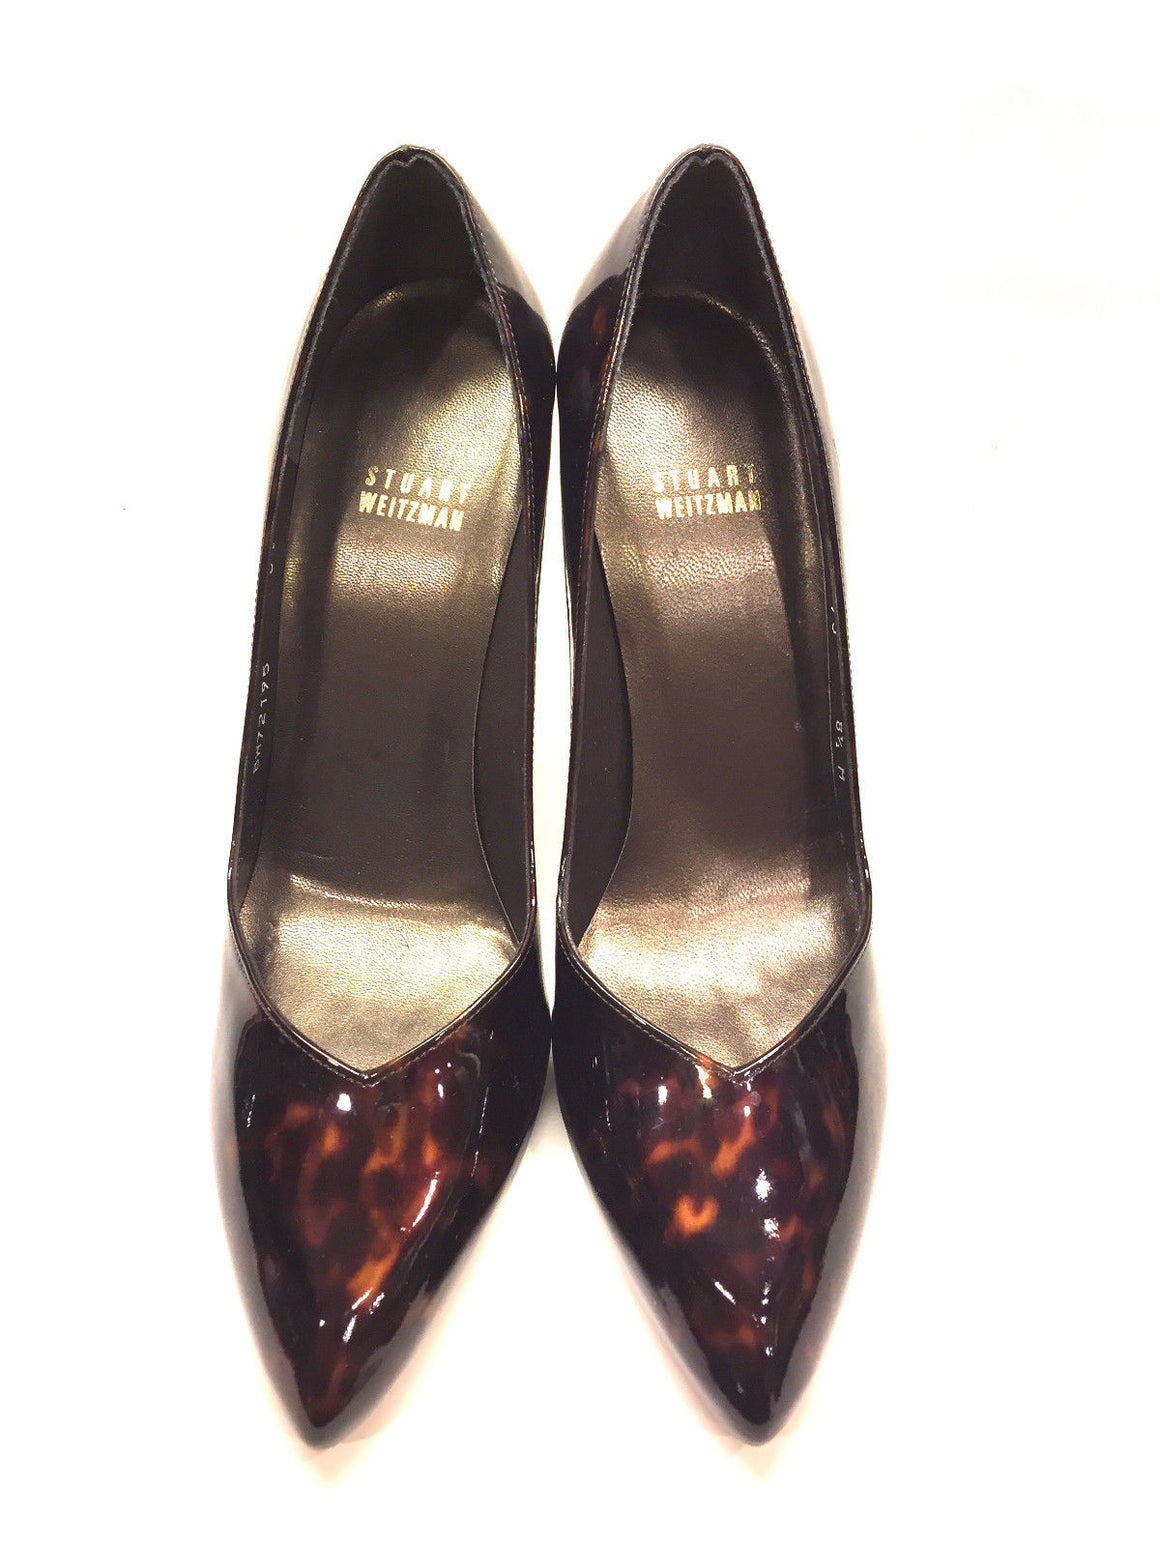 STUART WEITZMAN   Brown/Bronze Tortoise Patent Leather Hi-Heel Pumps Size:  8.5M